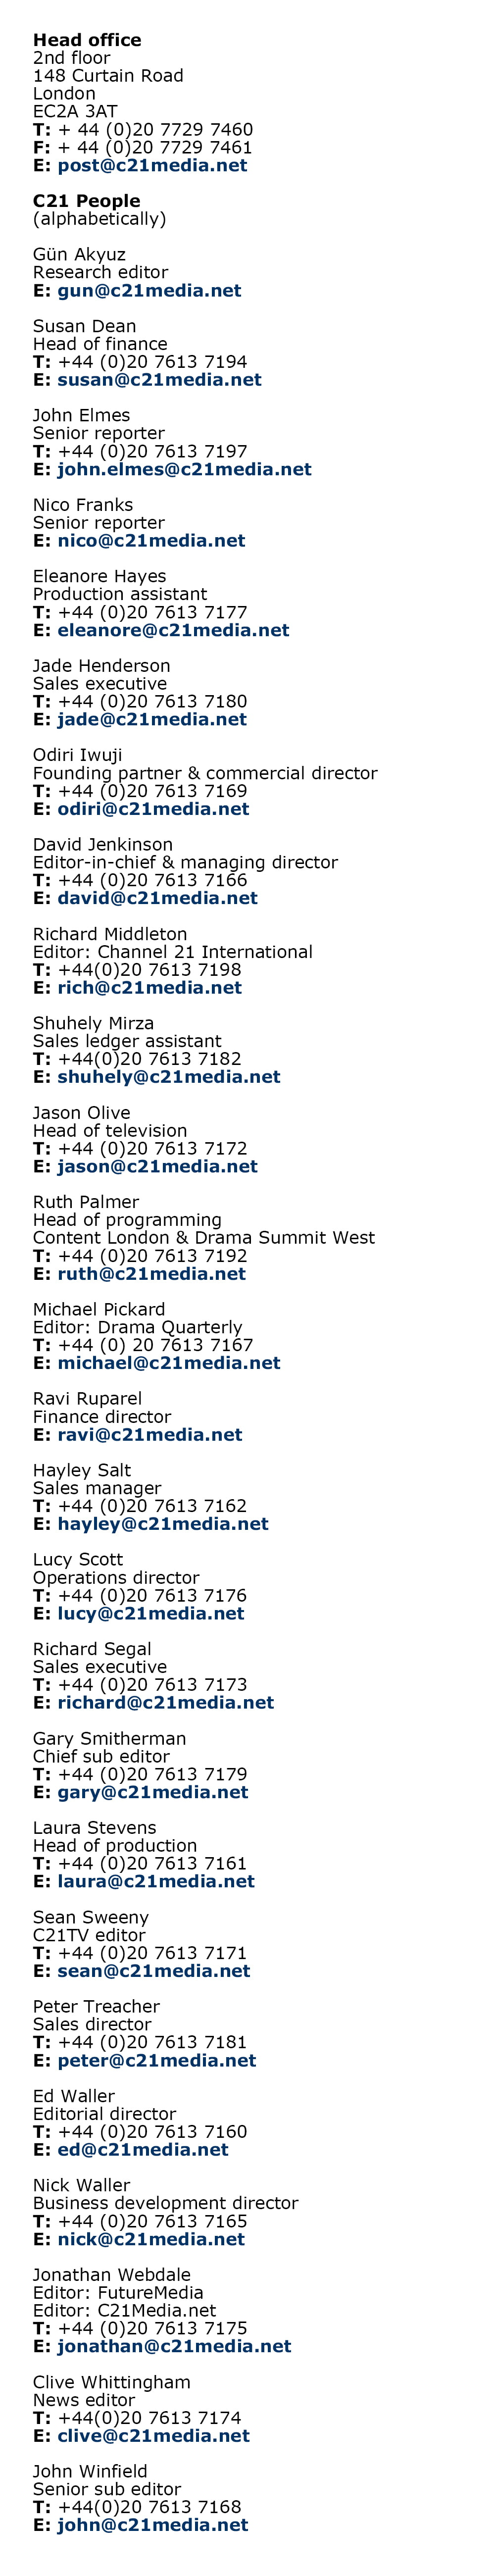 Web Contacts February 2019